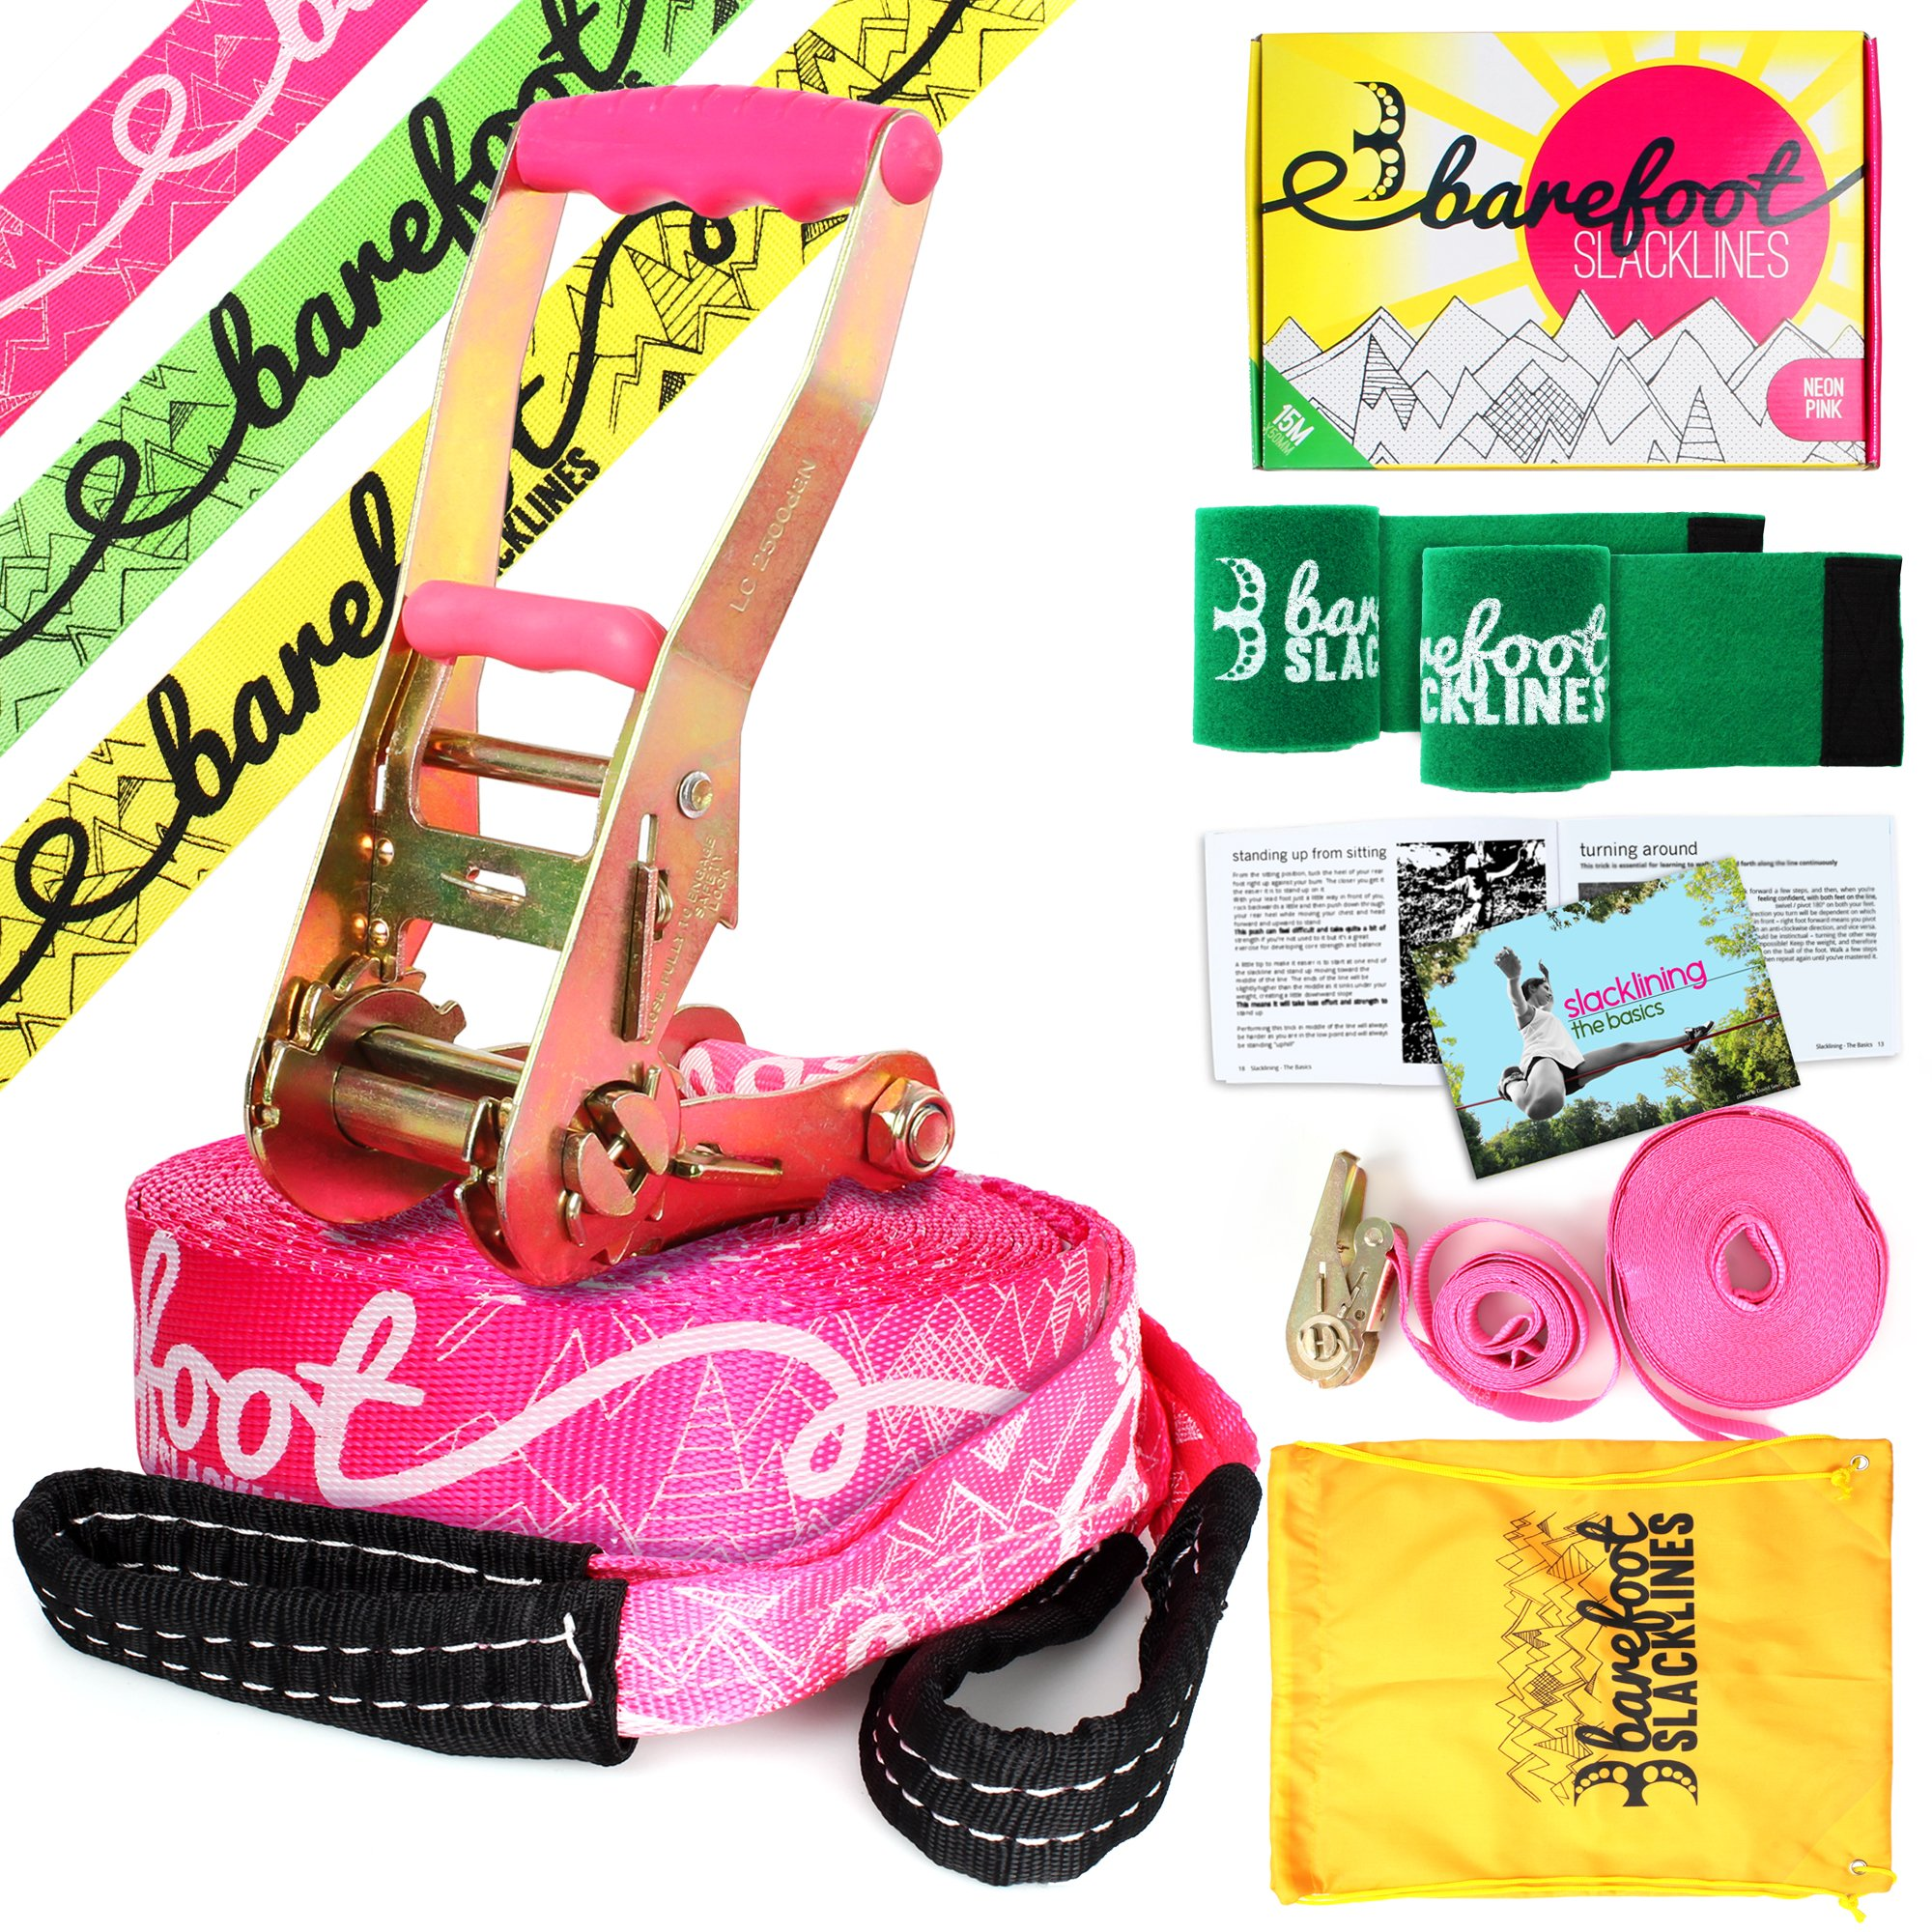 Barefoot Slacklines 49ft (15m) Line! Complete Set Including Slackline, Ratchet, Training Line, Bark Protectors & Instructions! Great for Kids and Family, 3 Fluro Colours Available (Fluro Pink) by Barefoot Slacklines